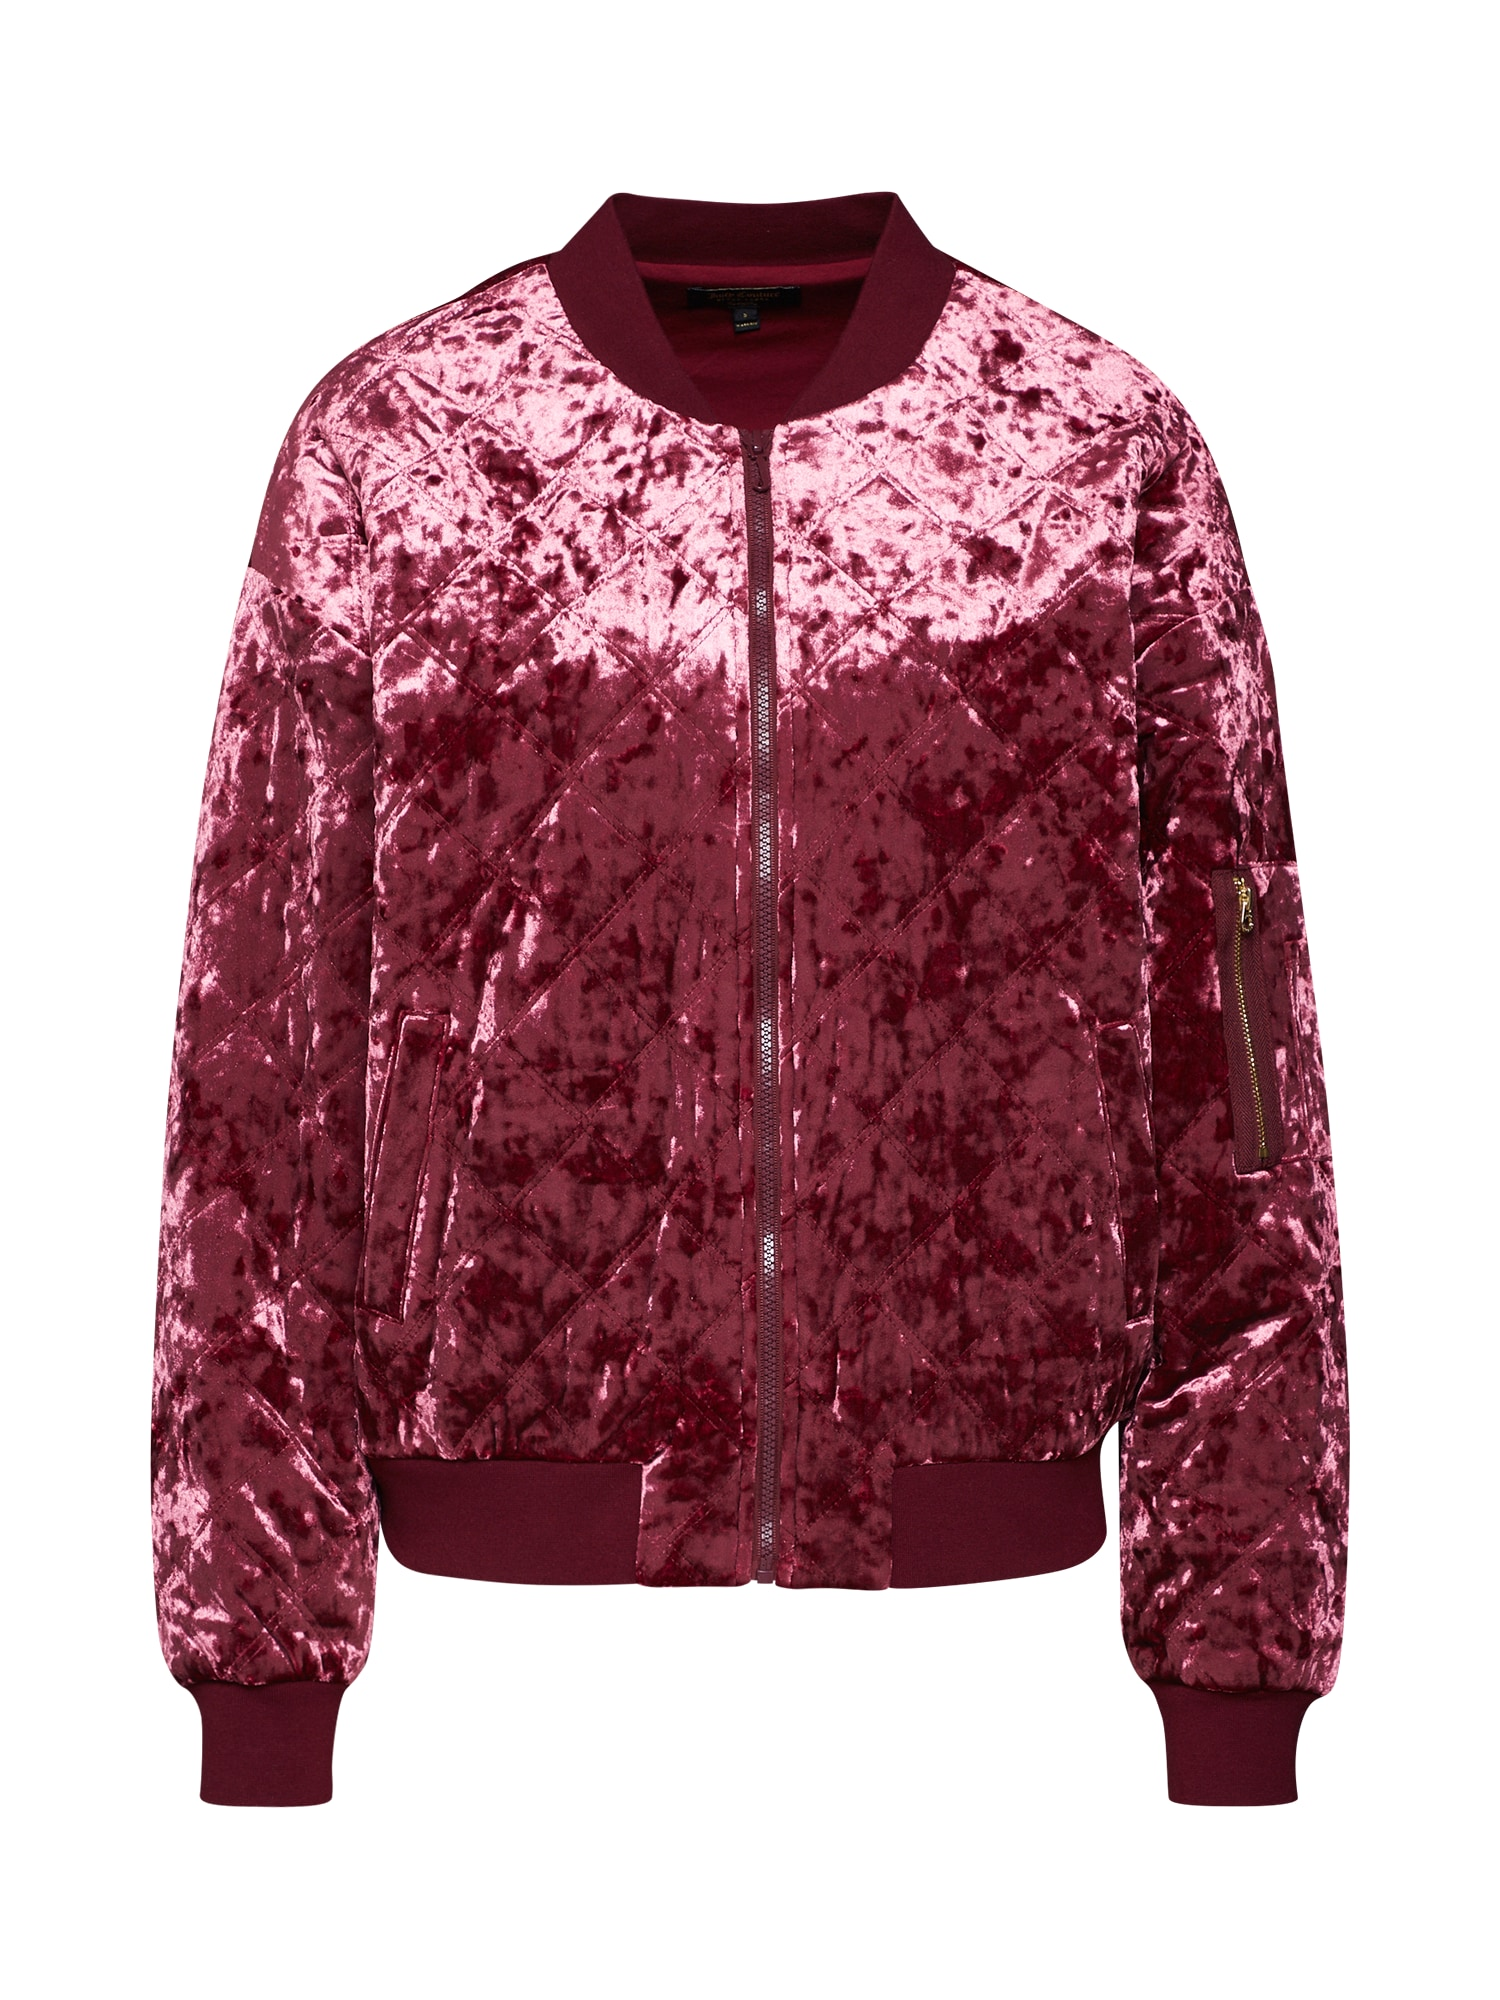 Přechodná bunda Crushed Velour Quilted Bomber Jacket vínově červená Juicy Couture Black Label